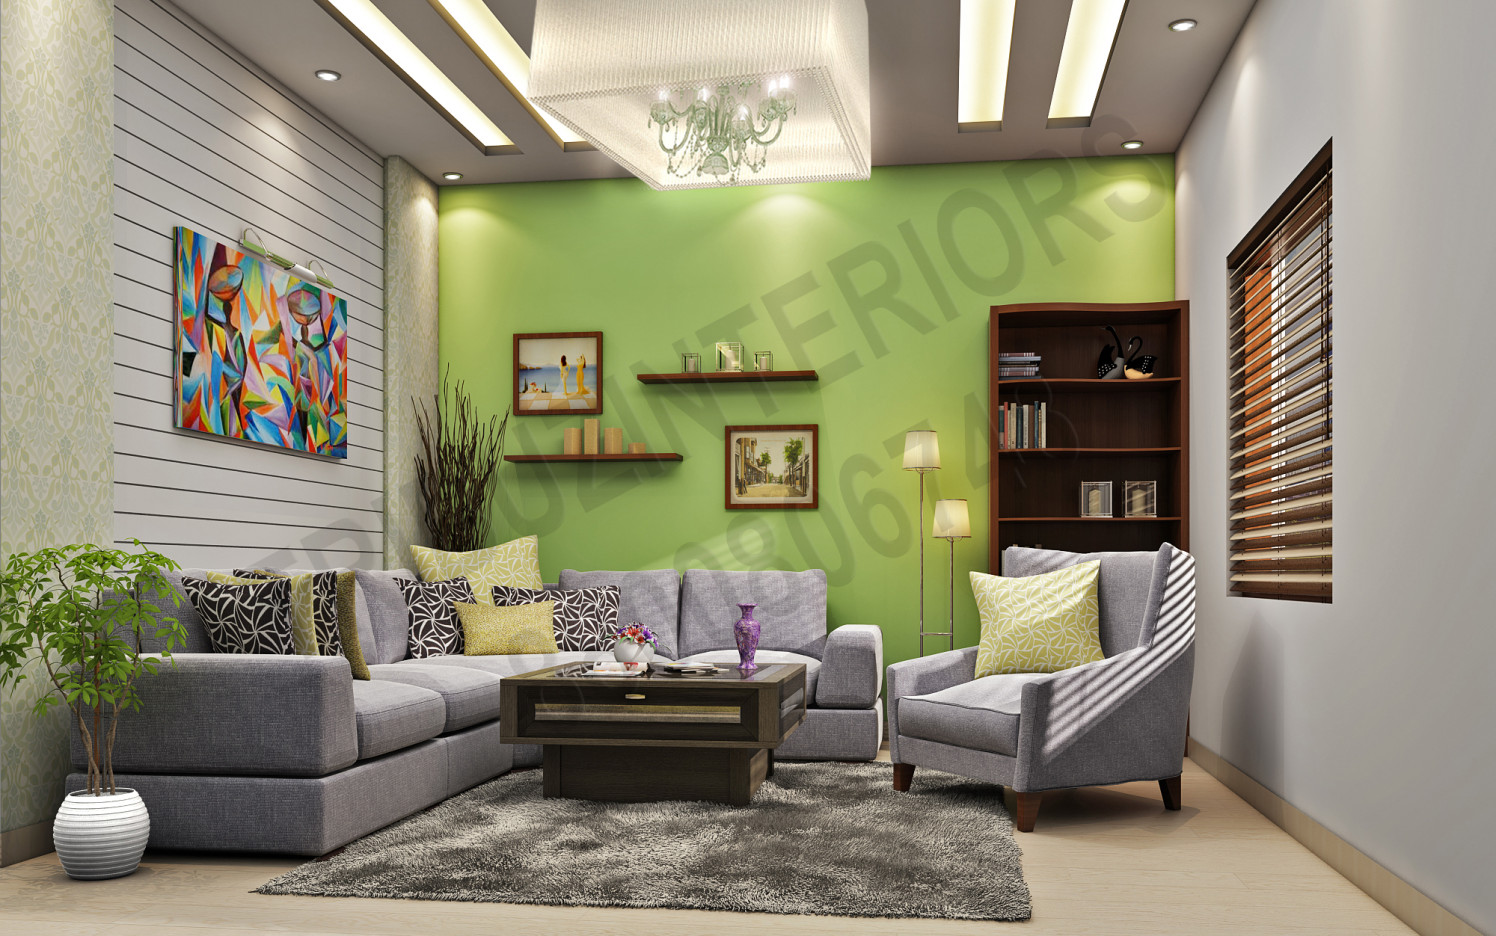 Living Room With Grey Fabric Sofa And Wooden Selves by Tribuz Interiors Pvt. Ltd. Living-room Modern | Interior Design Photos & Ideas